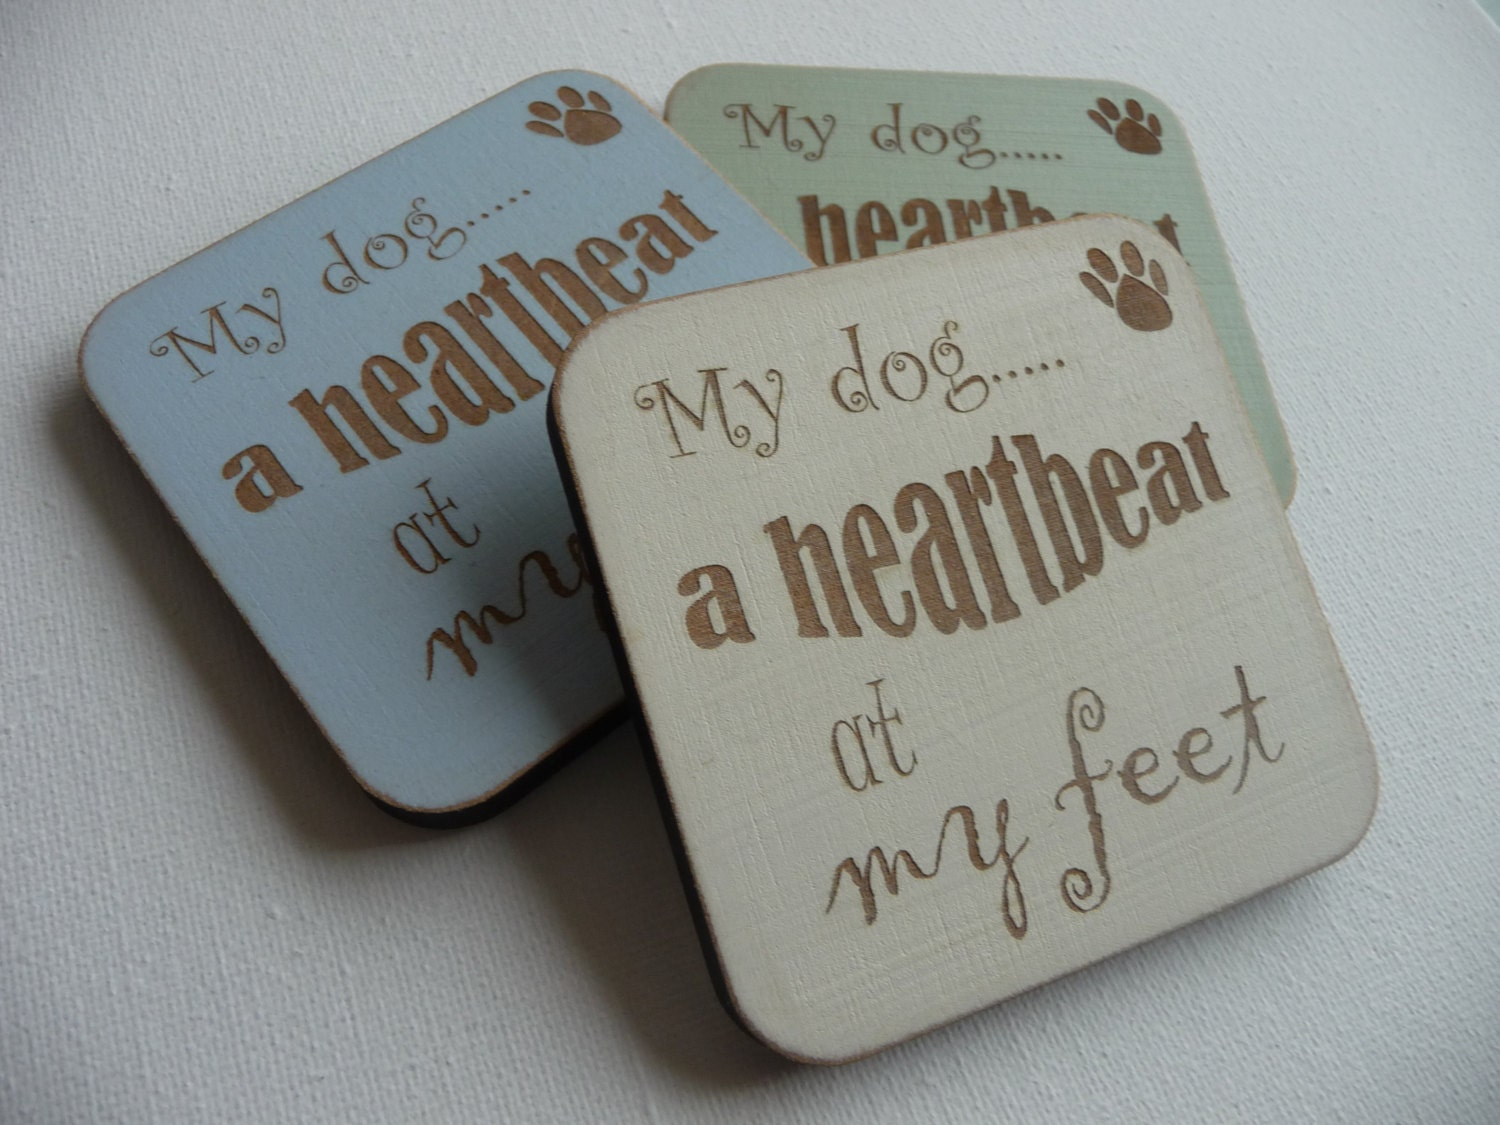 Refrigerator Magnet Godmother Godparent Quote Pink: Dog Quote Fridge Magnet My Dog A Heartbeat At My Feet